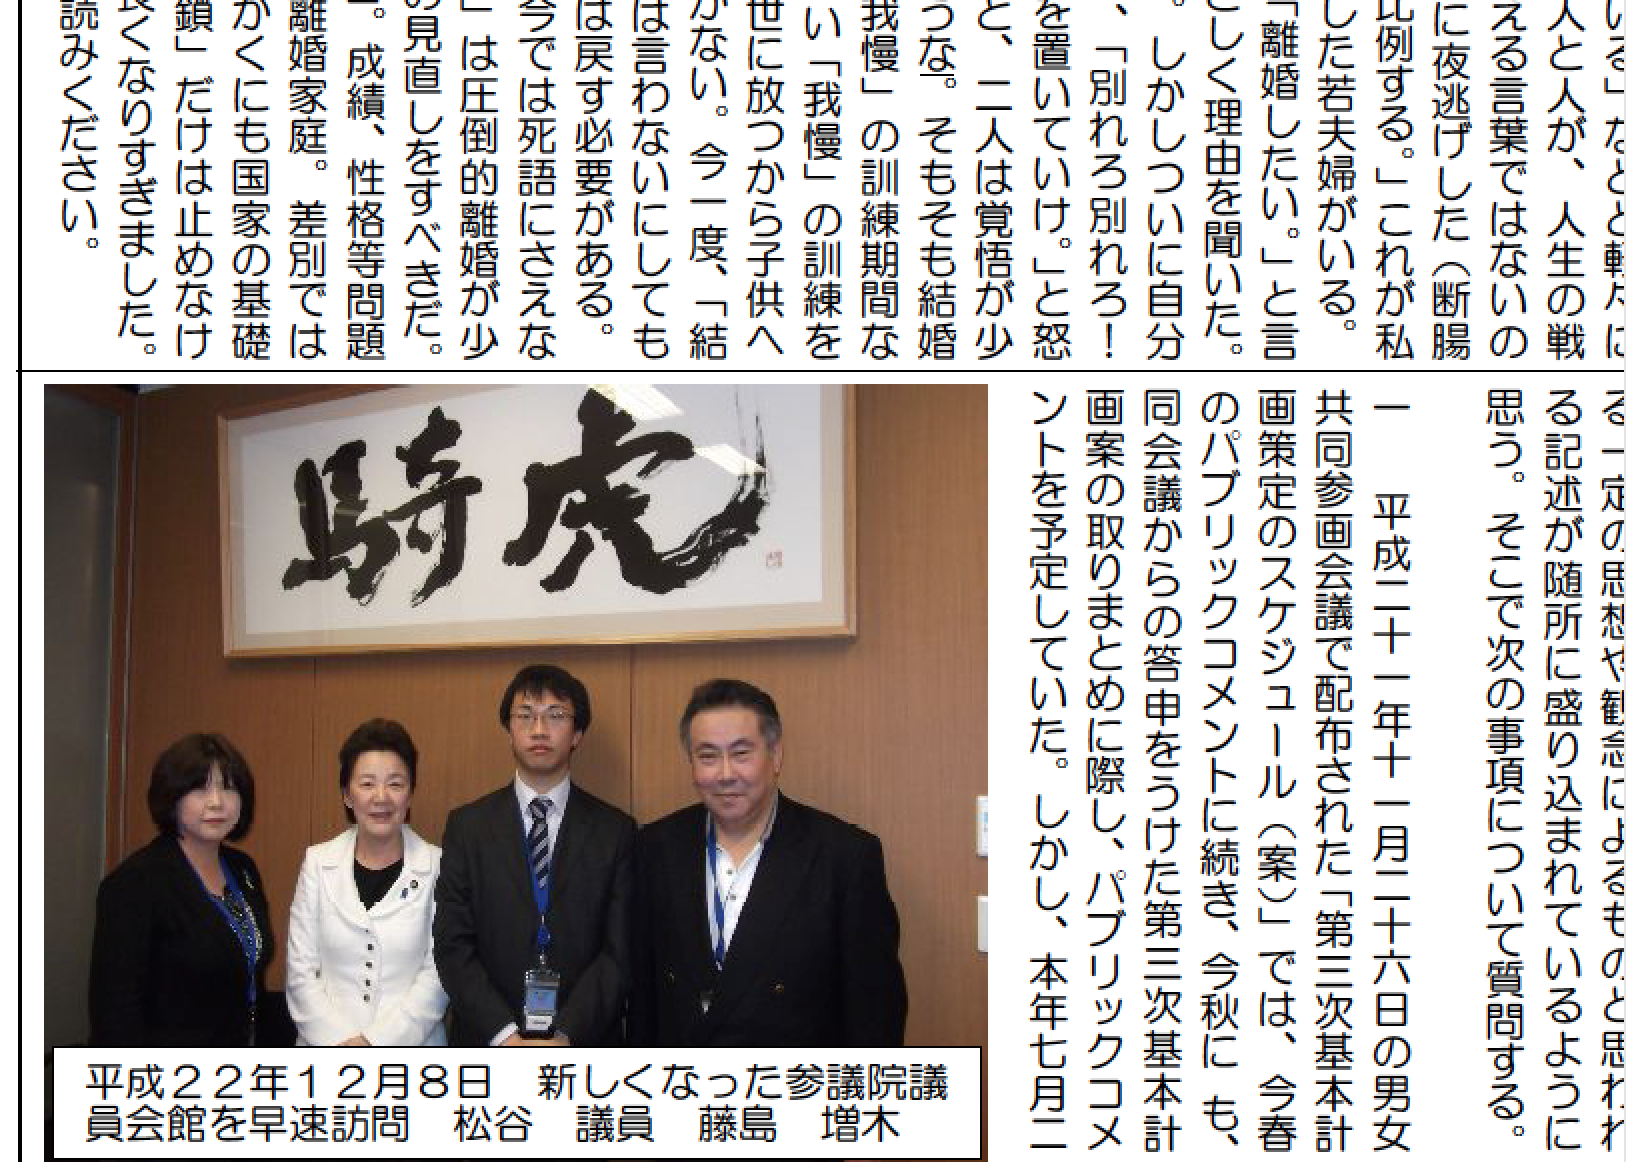 Japan's Female Police Commissioner worked with racist & sexist newspaper?